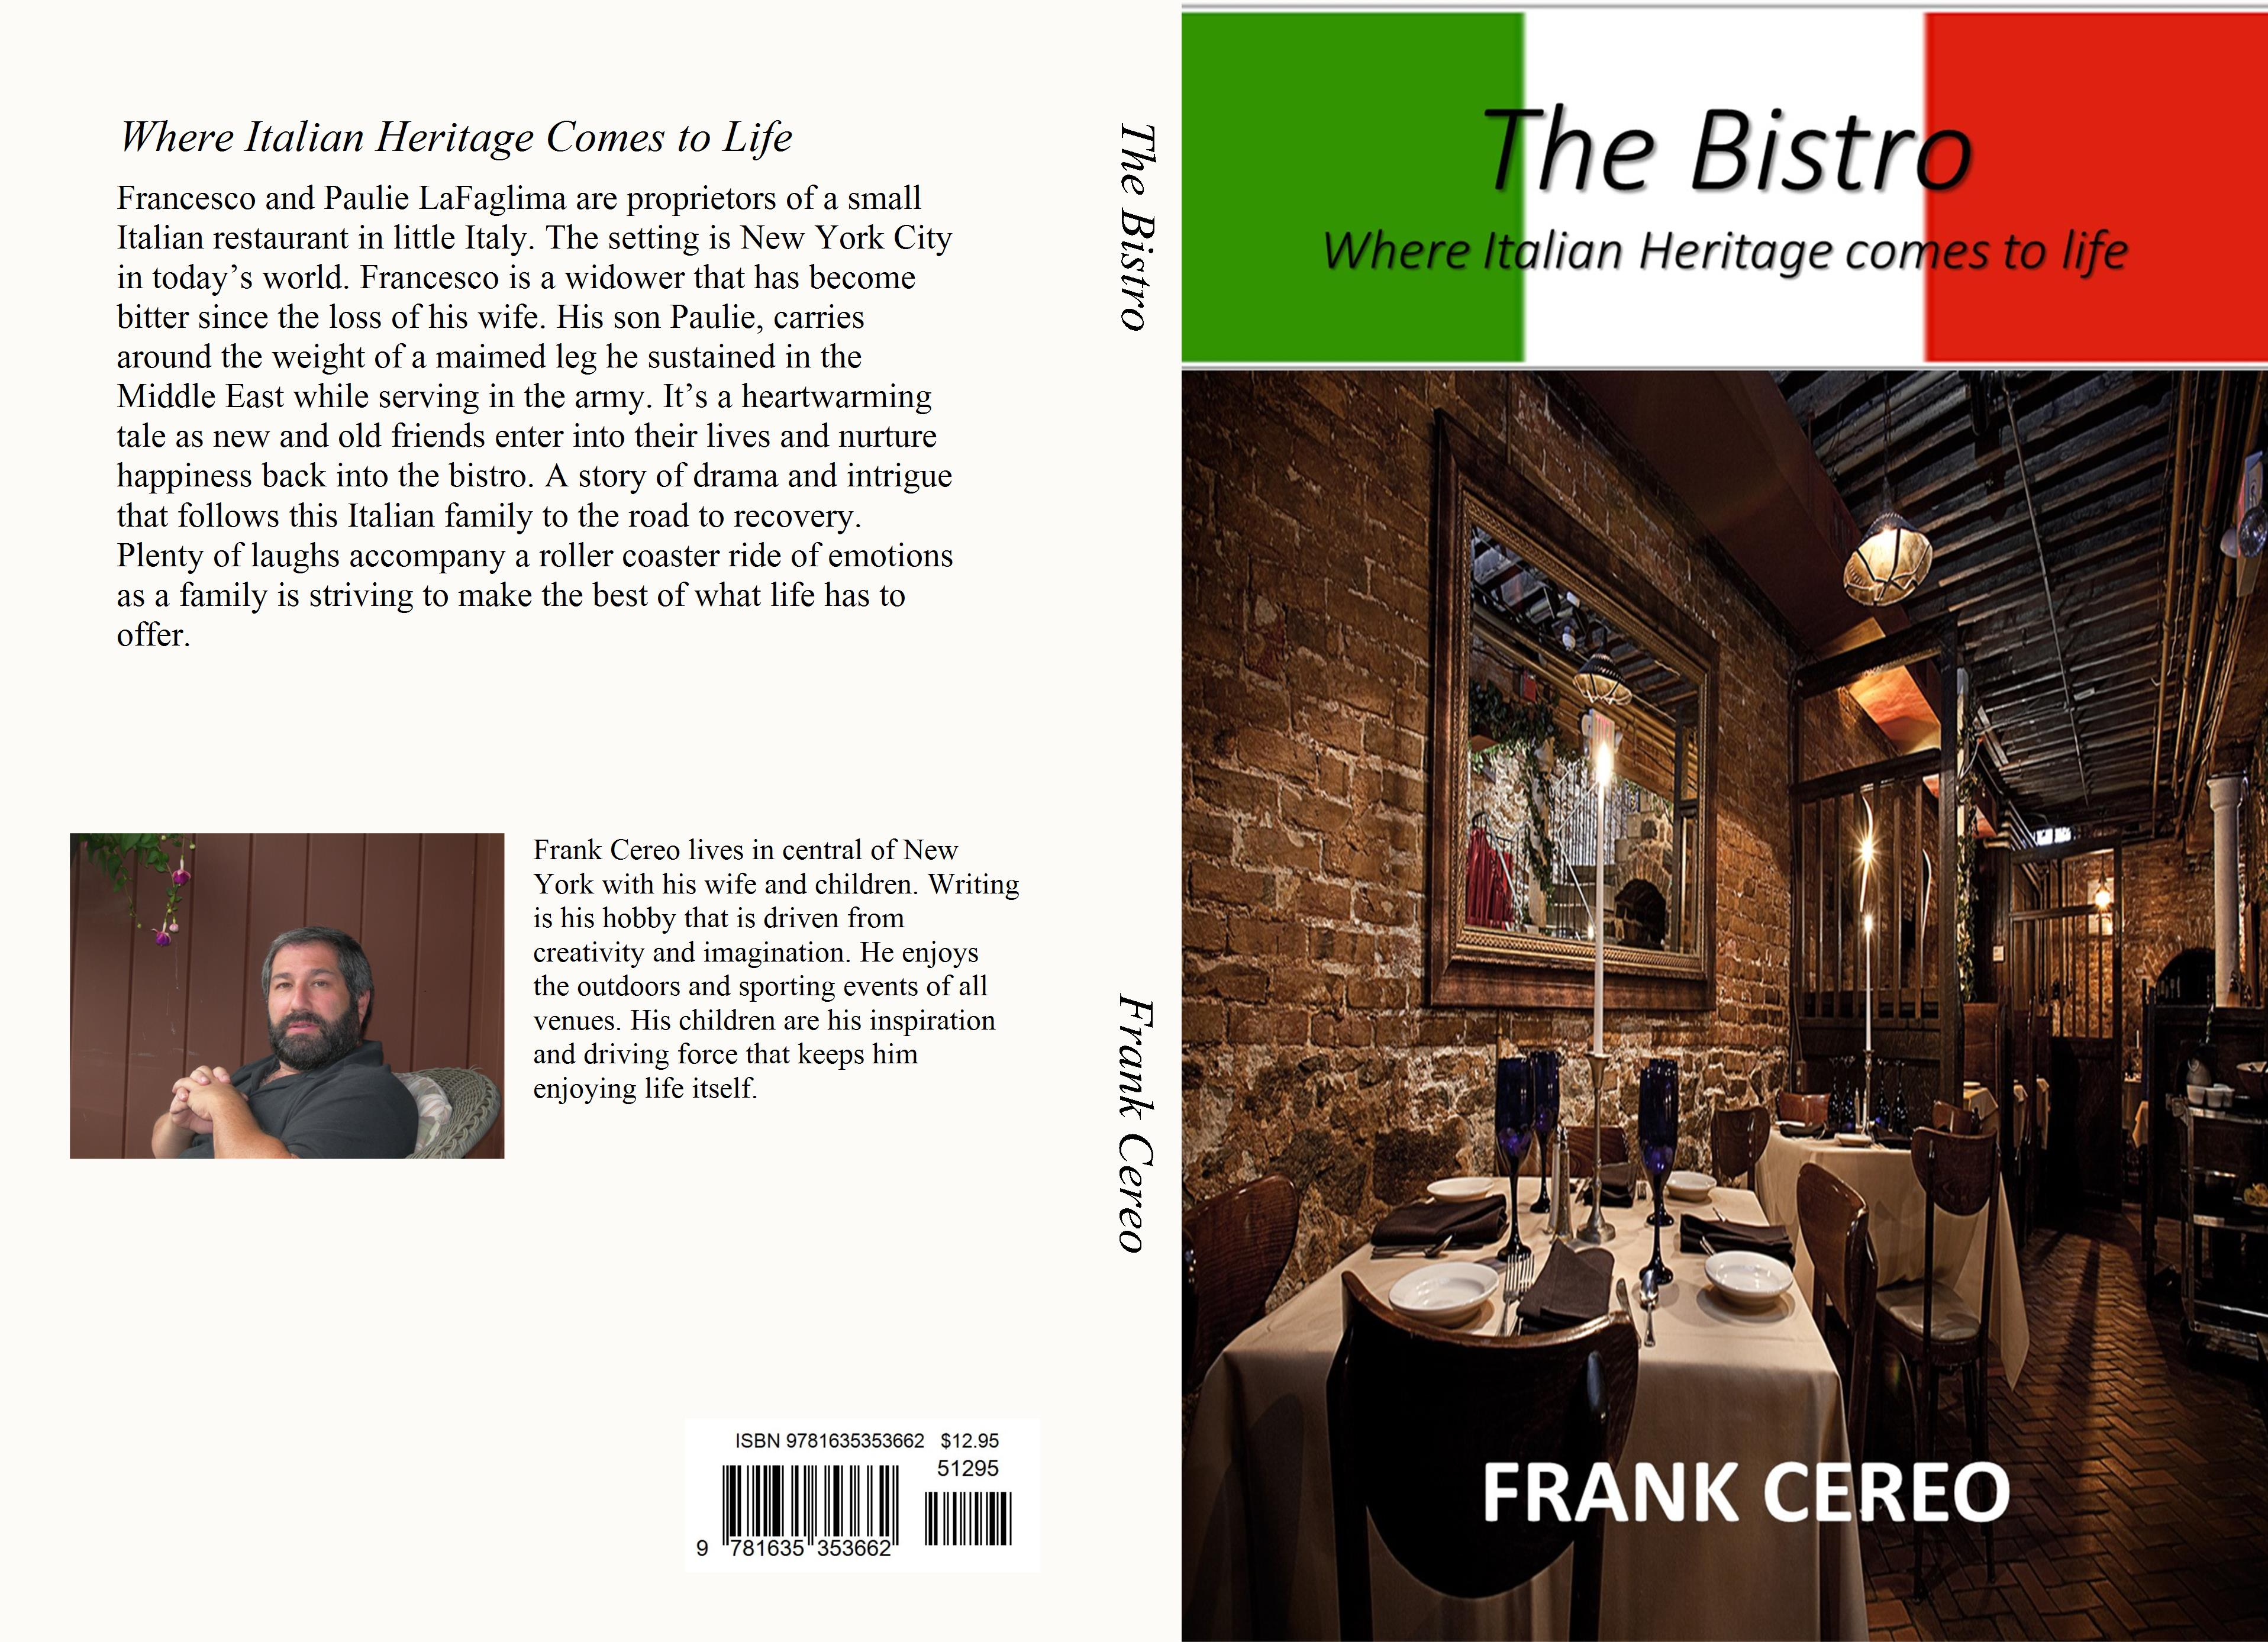 The Bistro cover image